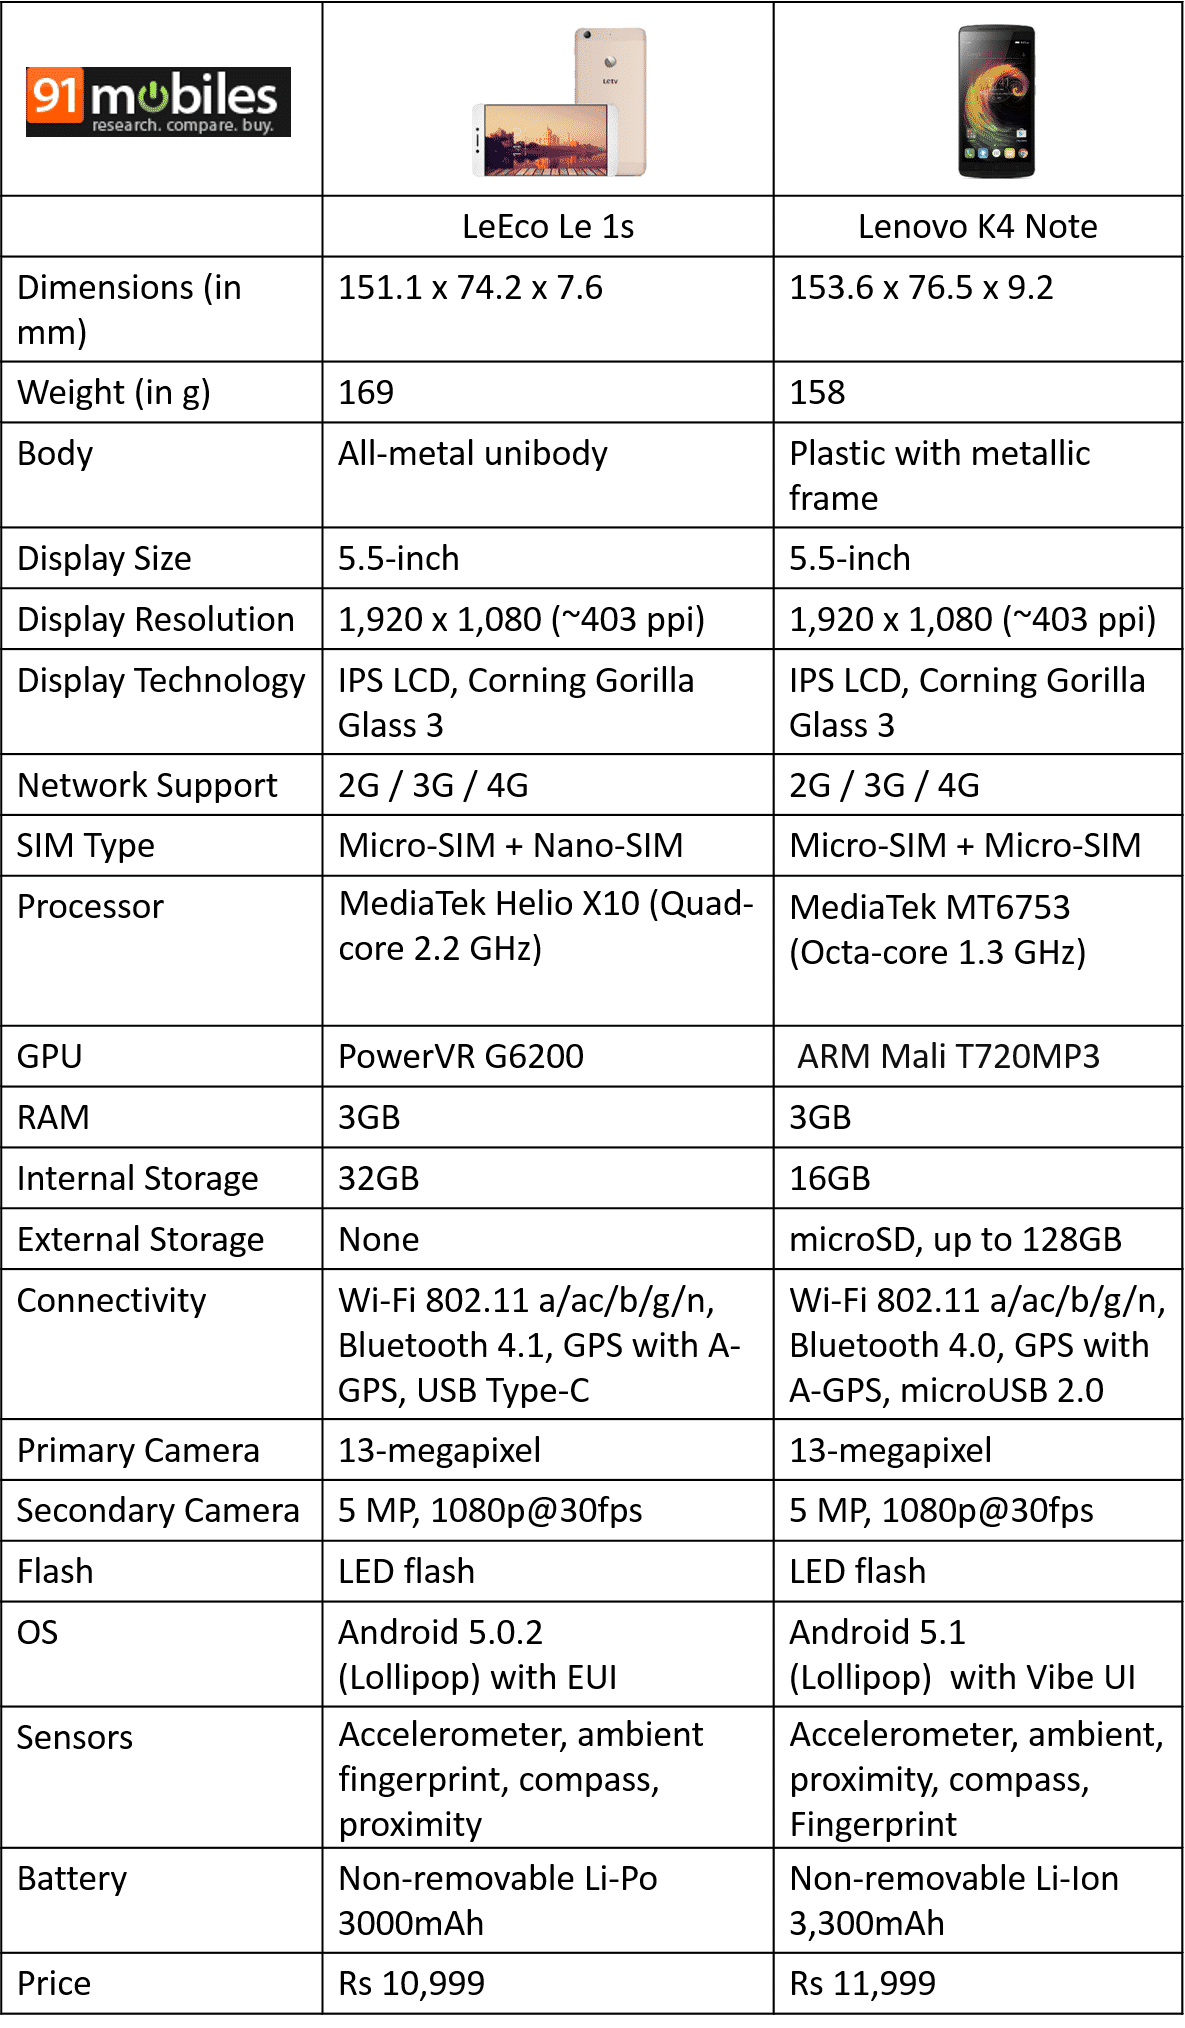 Lenovo K4 Note vs LeEco Le 1s comparison table